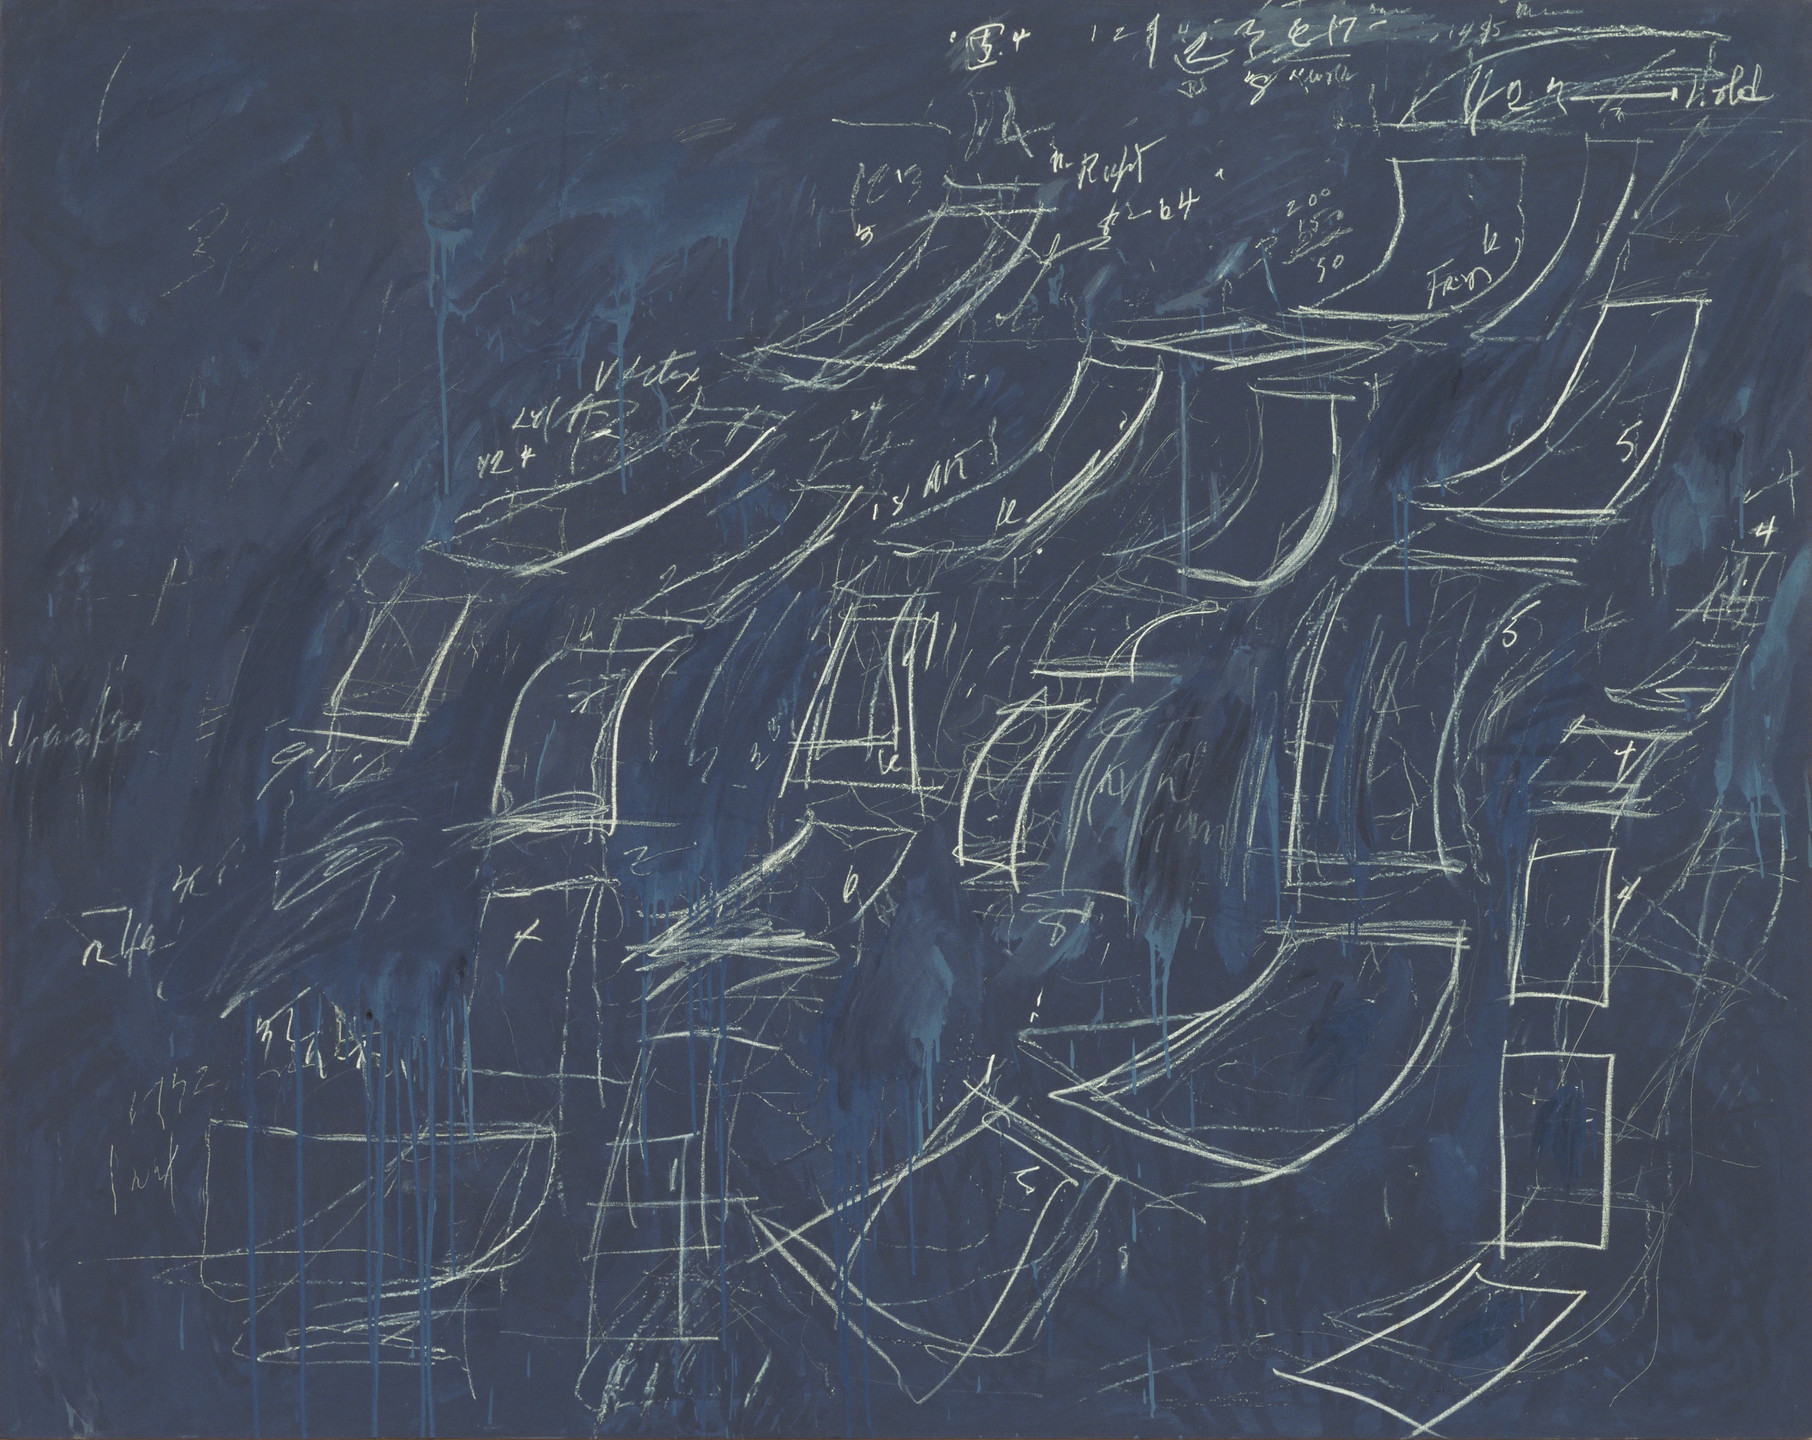 Cy Twombly. Untitled. 1968